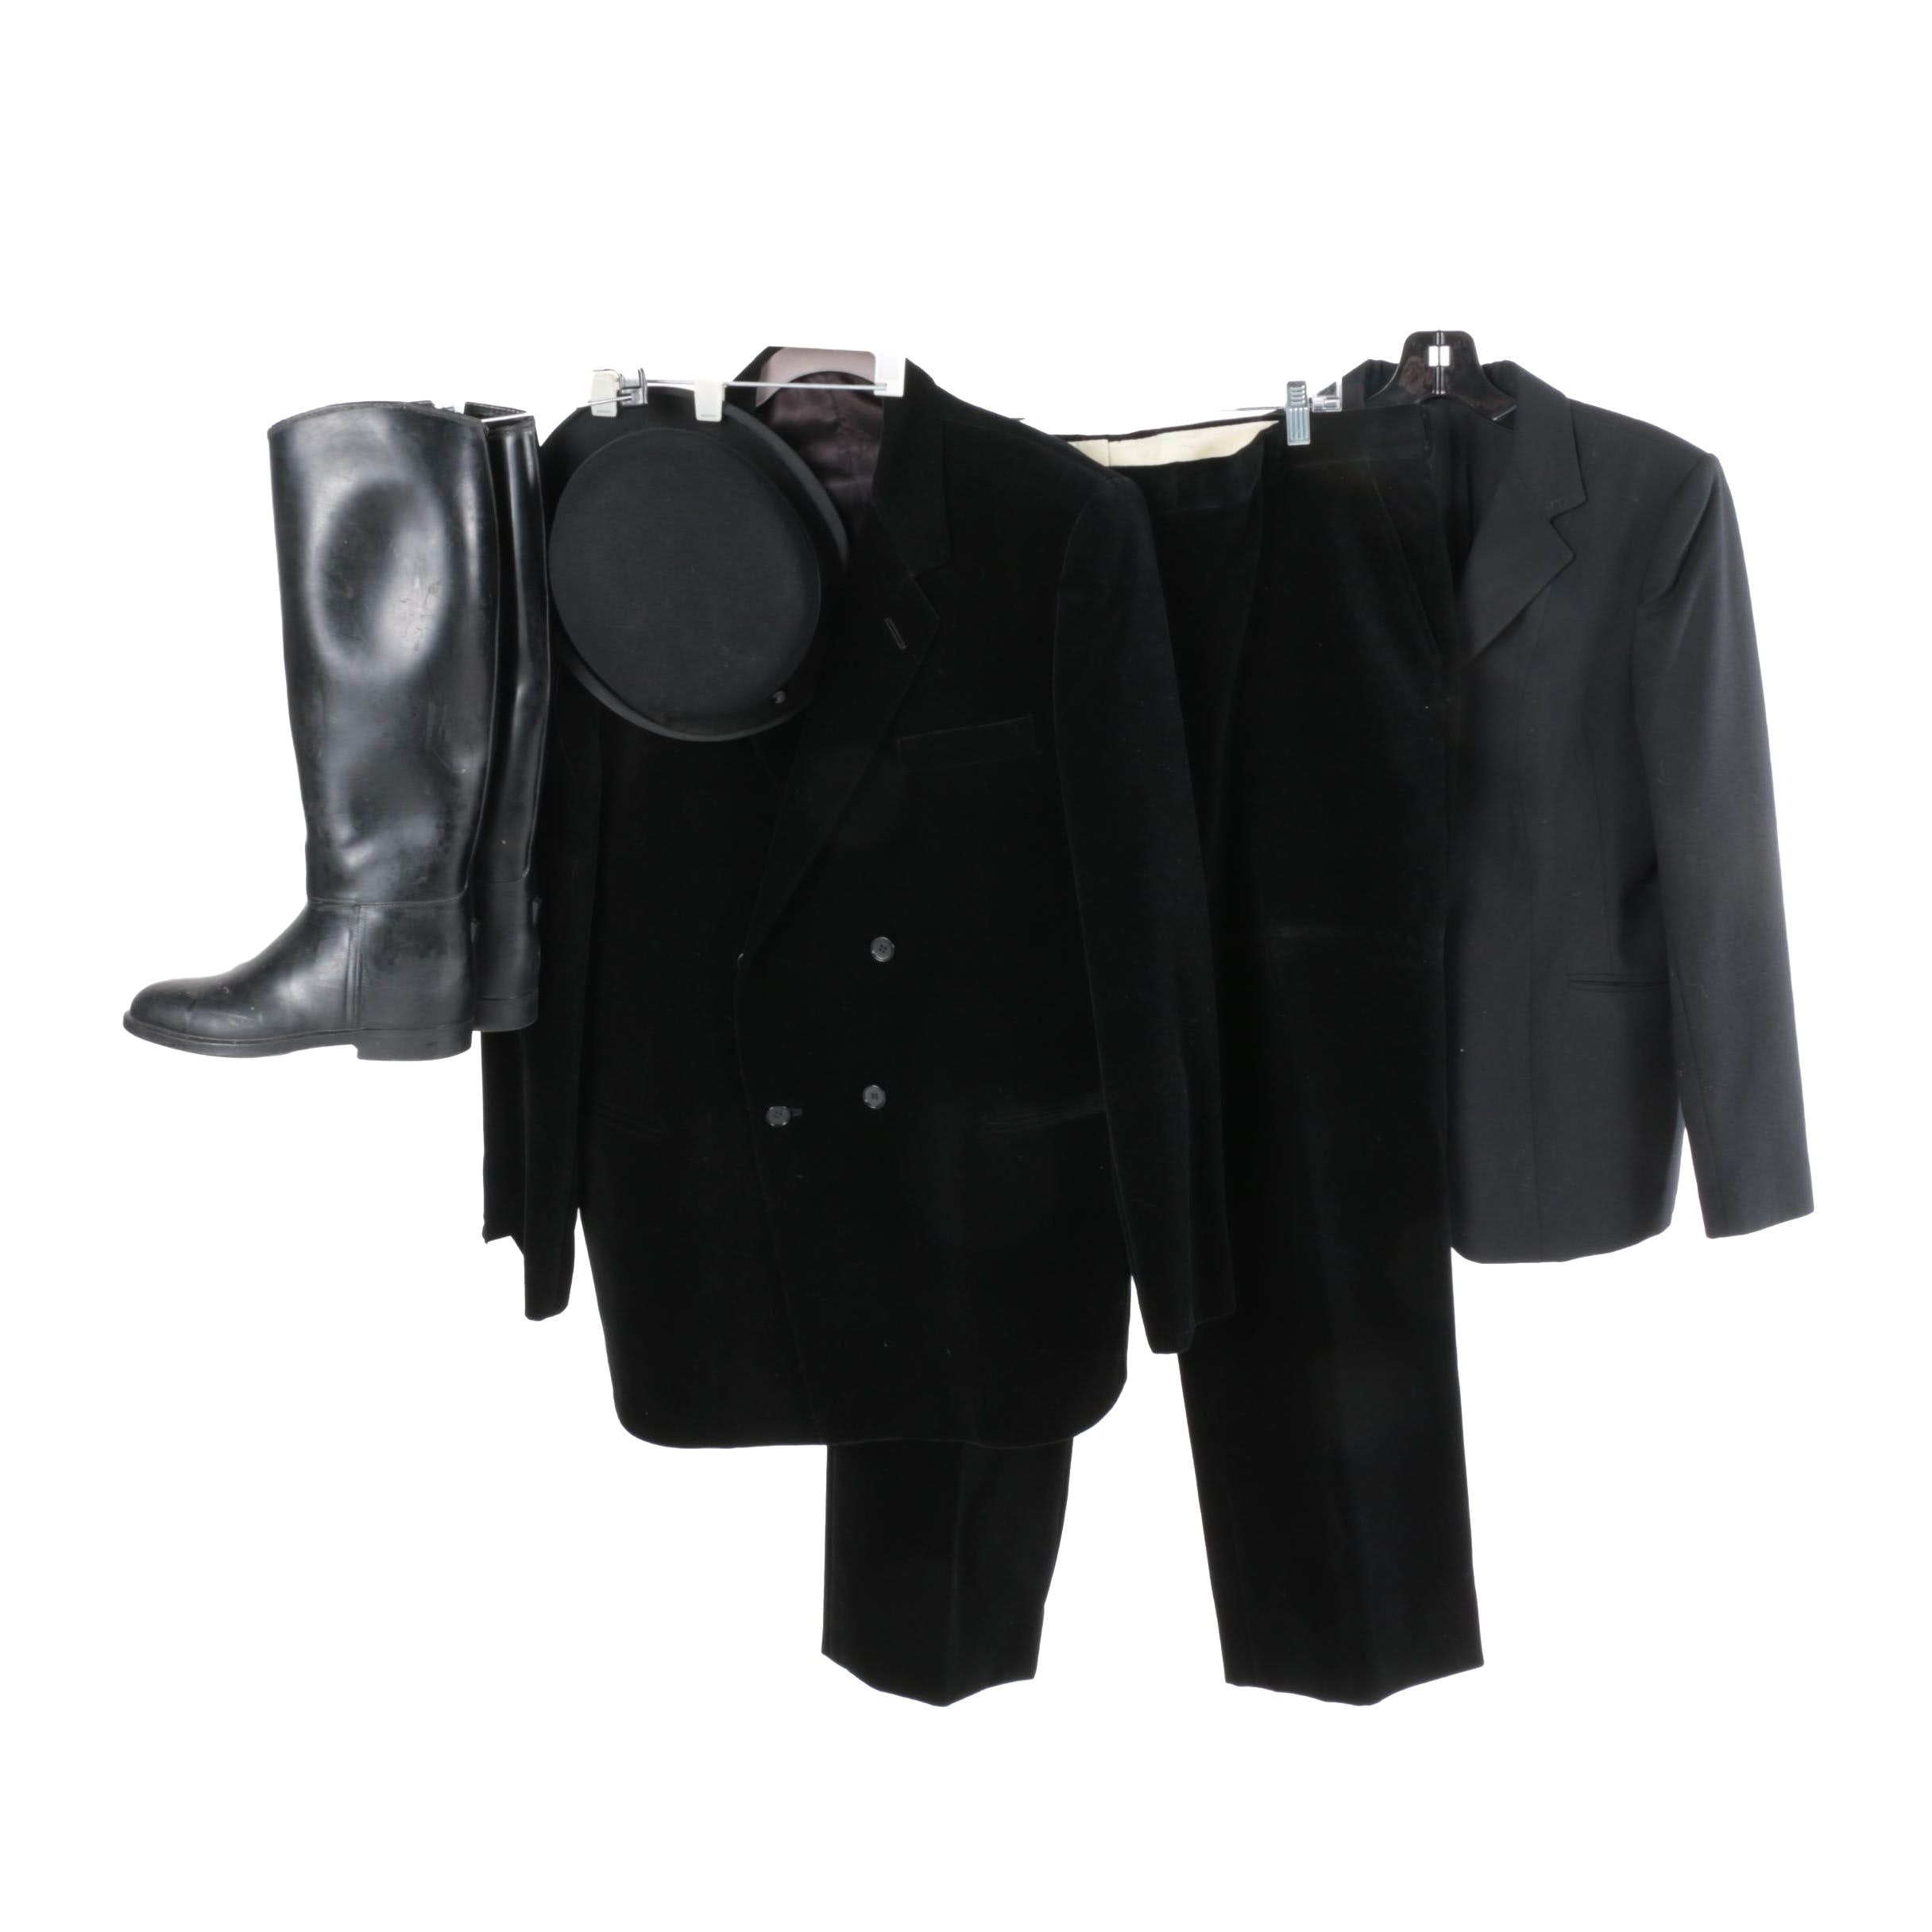 Men's and Women's Equestrian Clothing and Boots